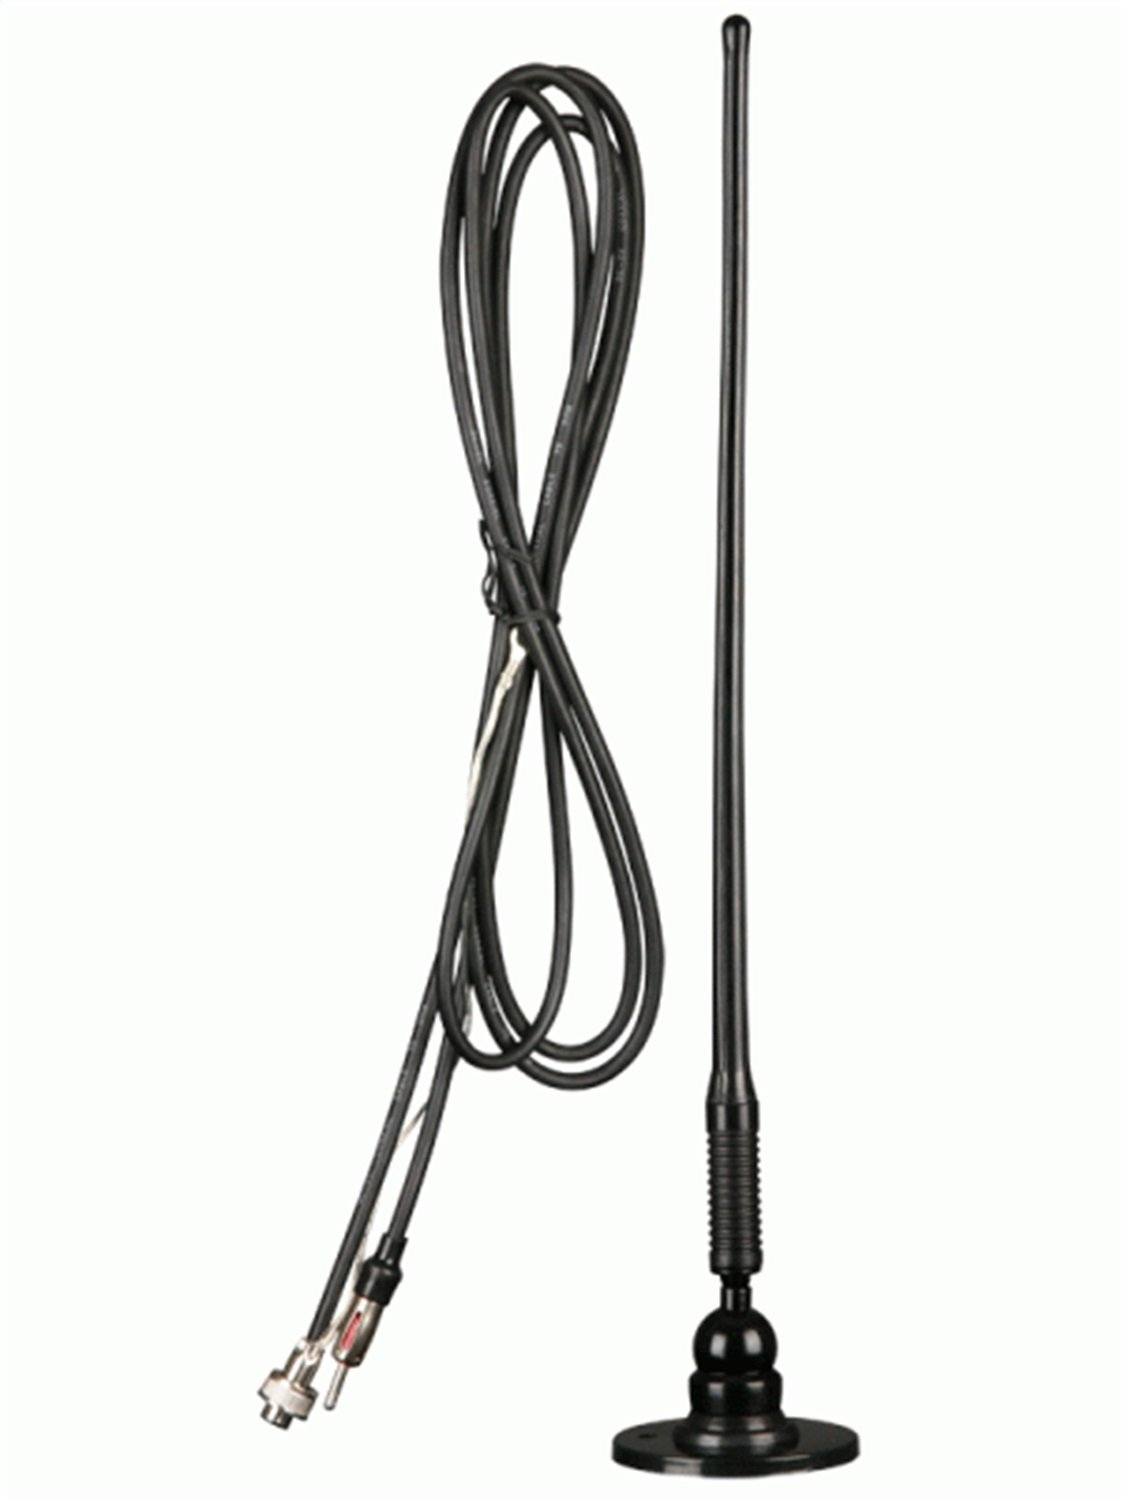 Metra 44-US01R Side Or Top Mount Rubber Antenna